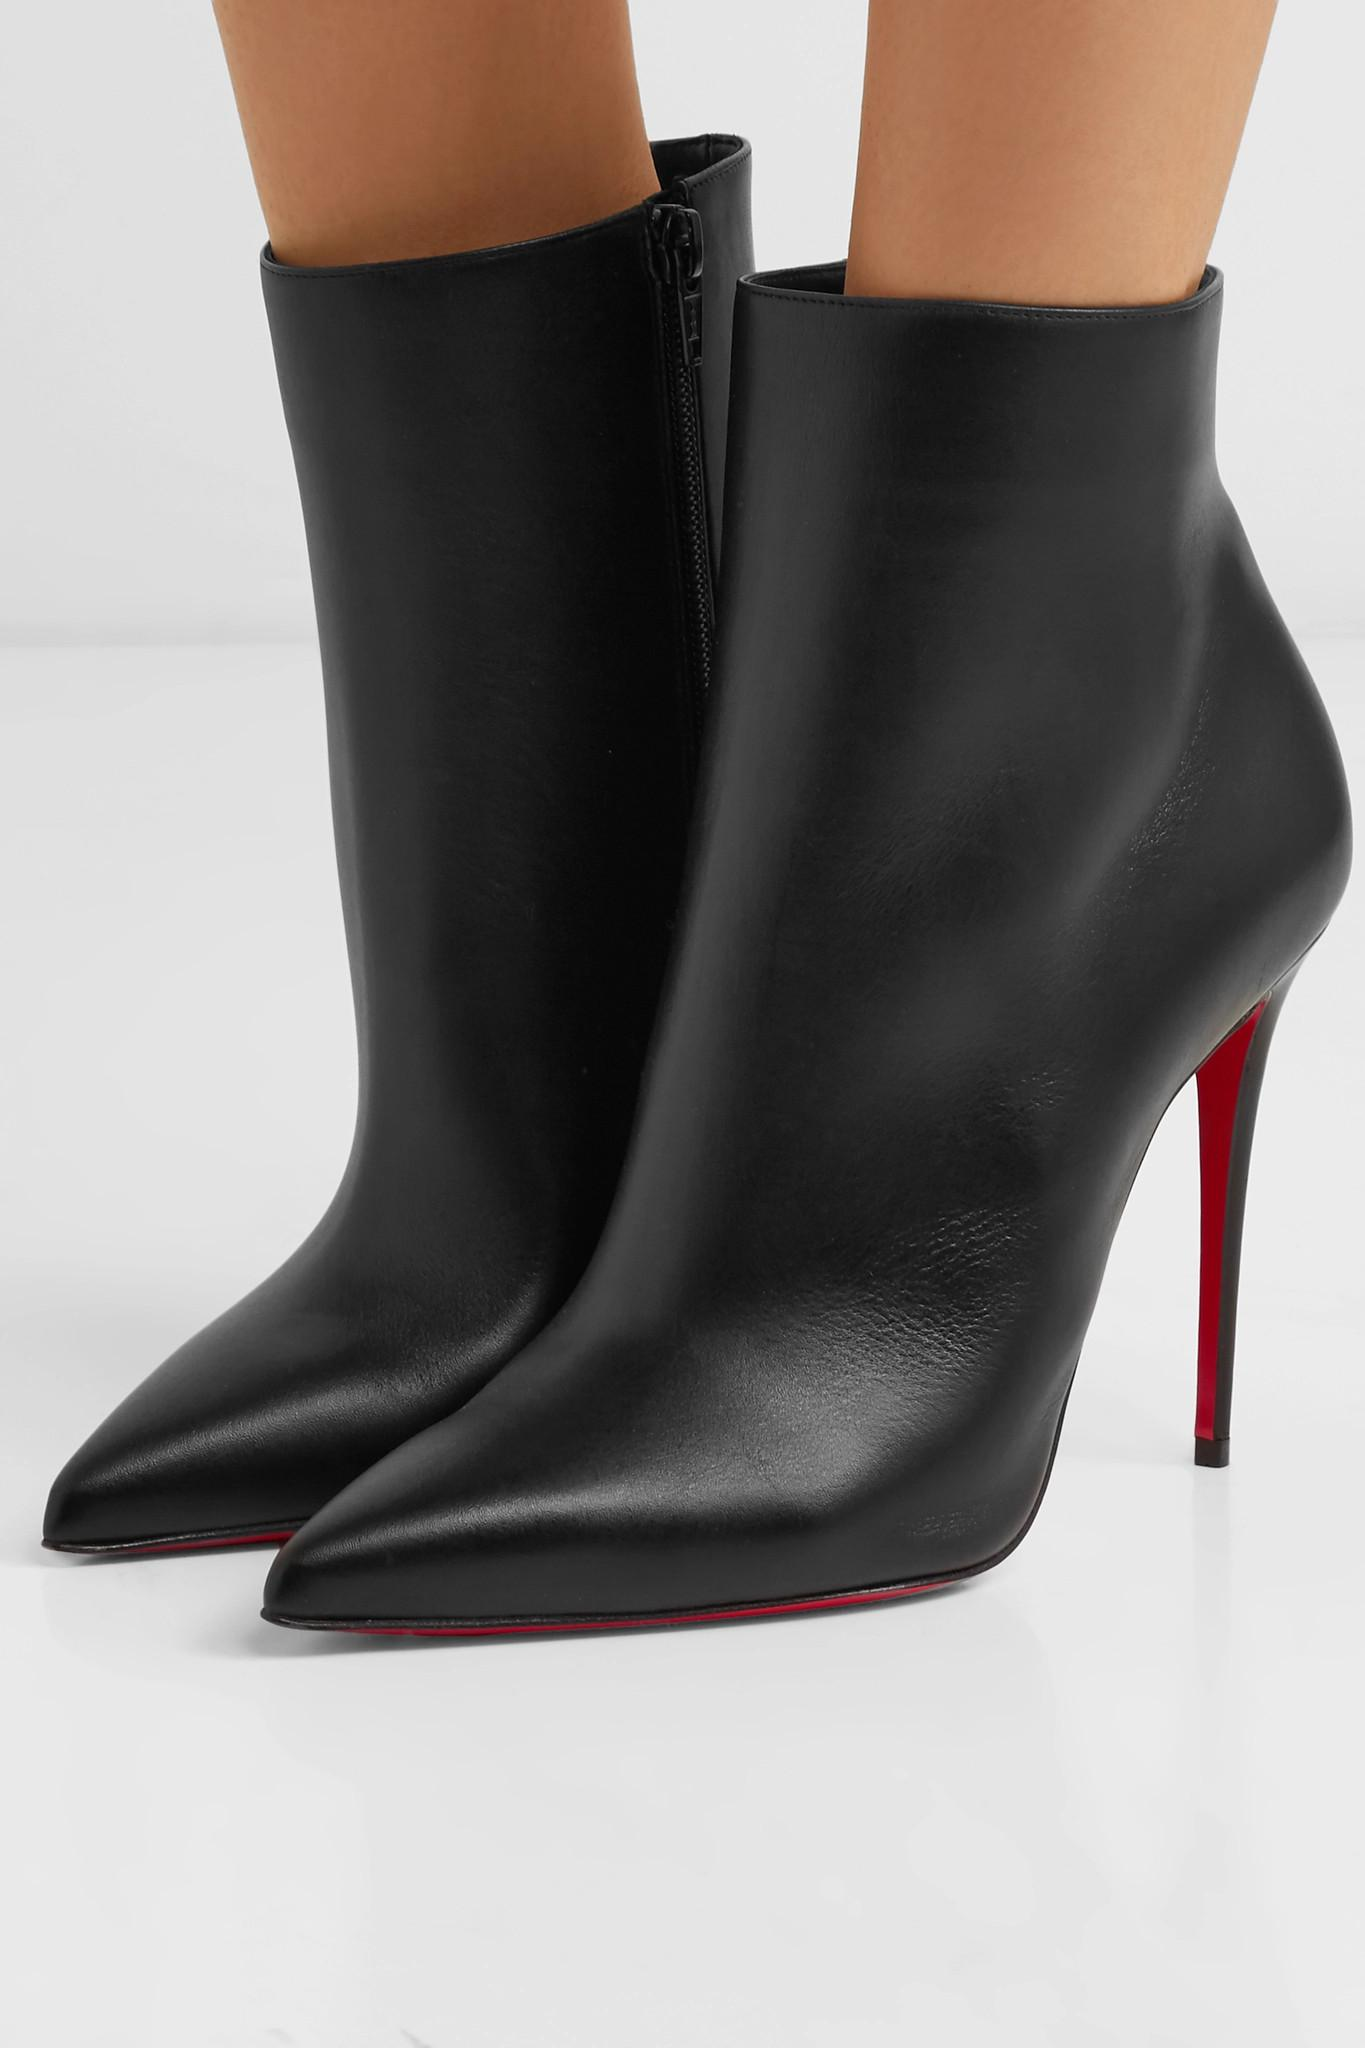 fb48ba202f43 Christian Louboutin - Black So Kate 110 Leather Ankle Boots - Lyst. View  fullscreen